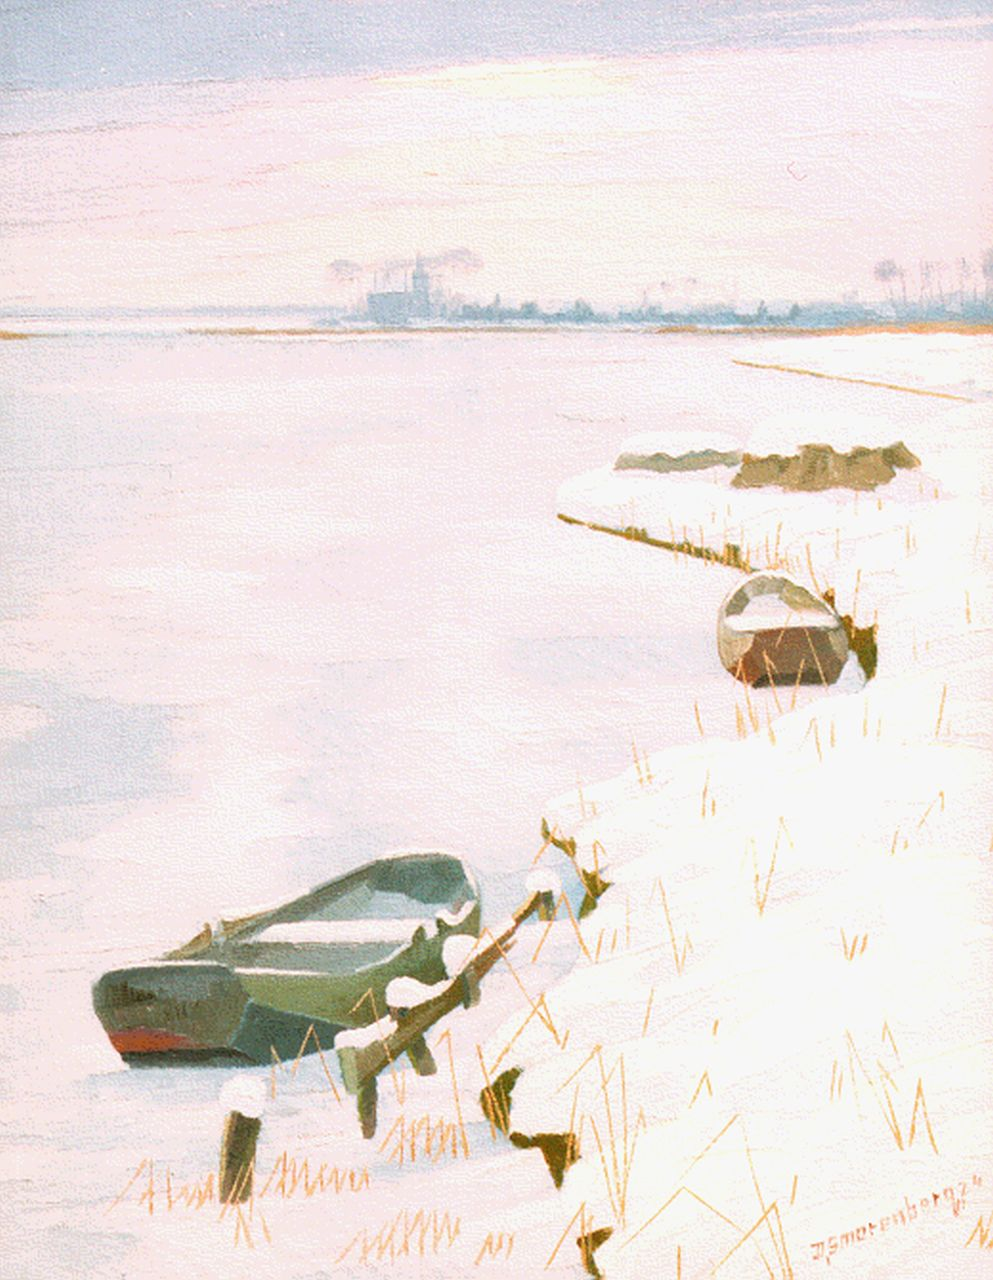 Smorenberg D.  | Dirk Smorenberg, A winter landscape with moored barges, oil on canvas 44.3 x 34.6 cm, signed l.r. and dated '24